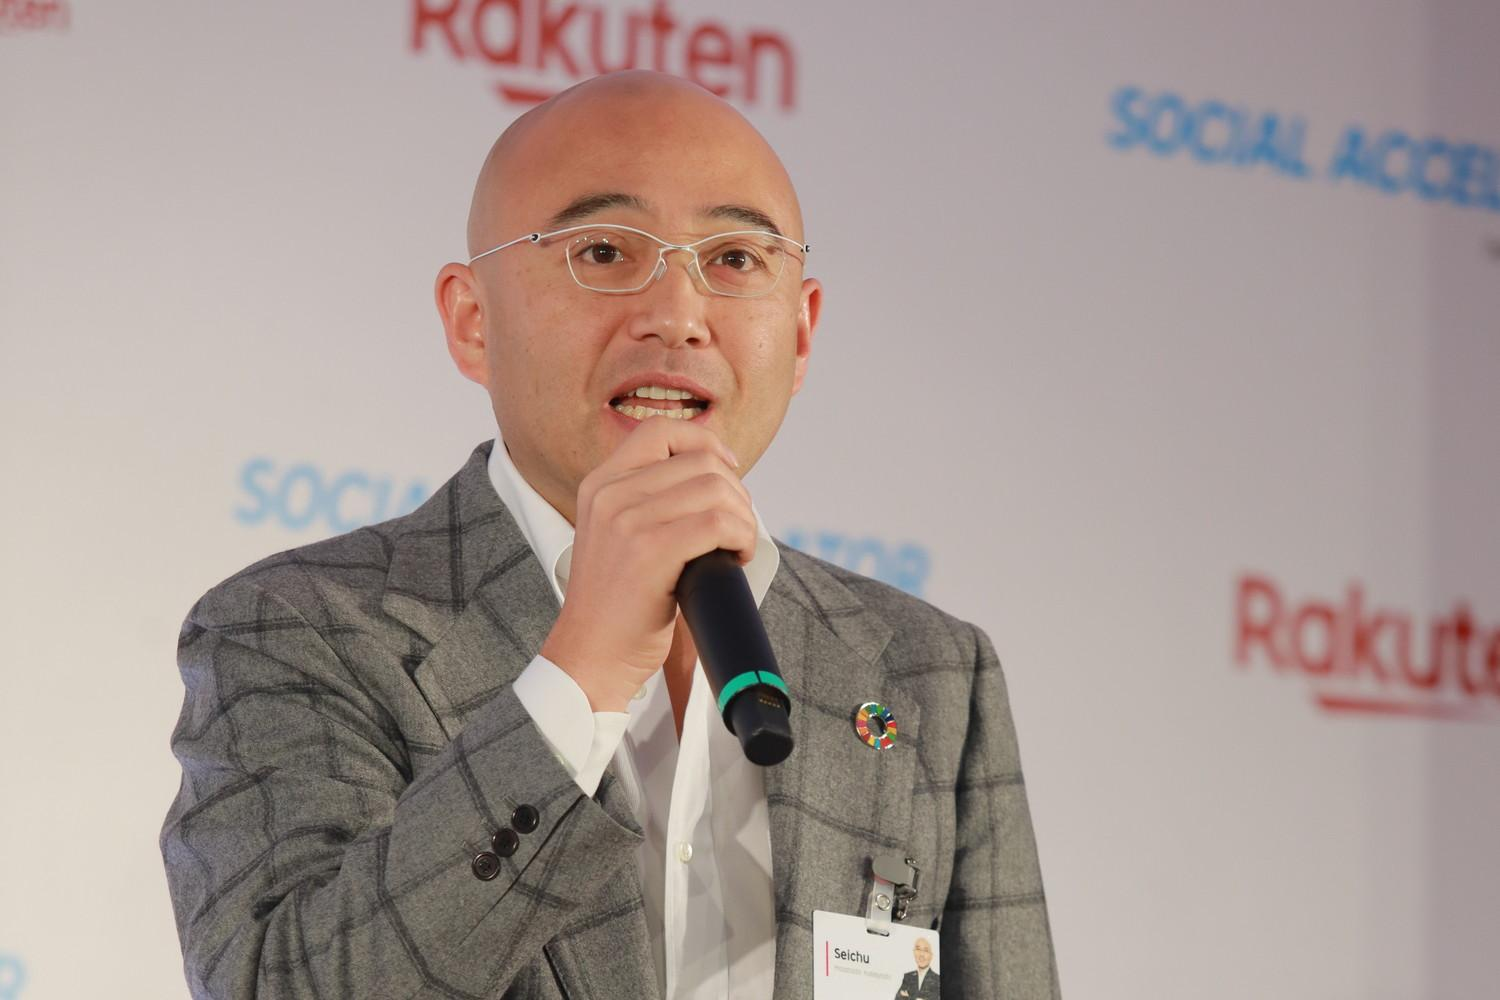 """If we can tackle social issues through business, we can ensure that the solution is sustainable,"" said Rakuten co-founder and Chief People Officer Masatada ""Seichu"" Kobayashi at Rakuten Social Accelerator Demo Day."